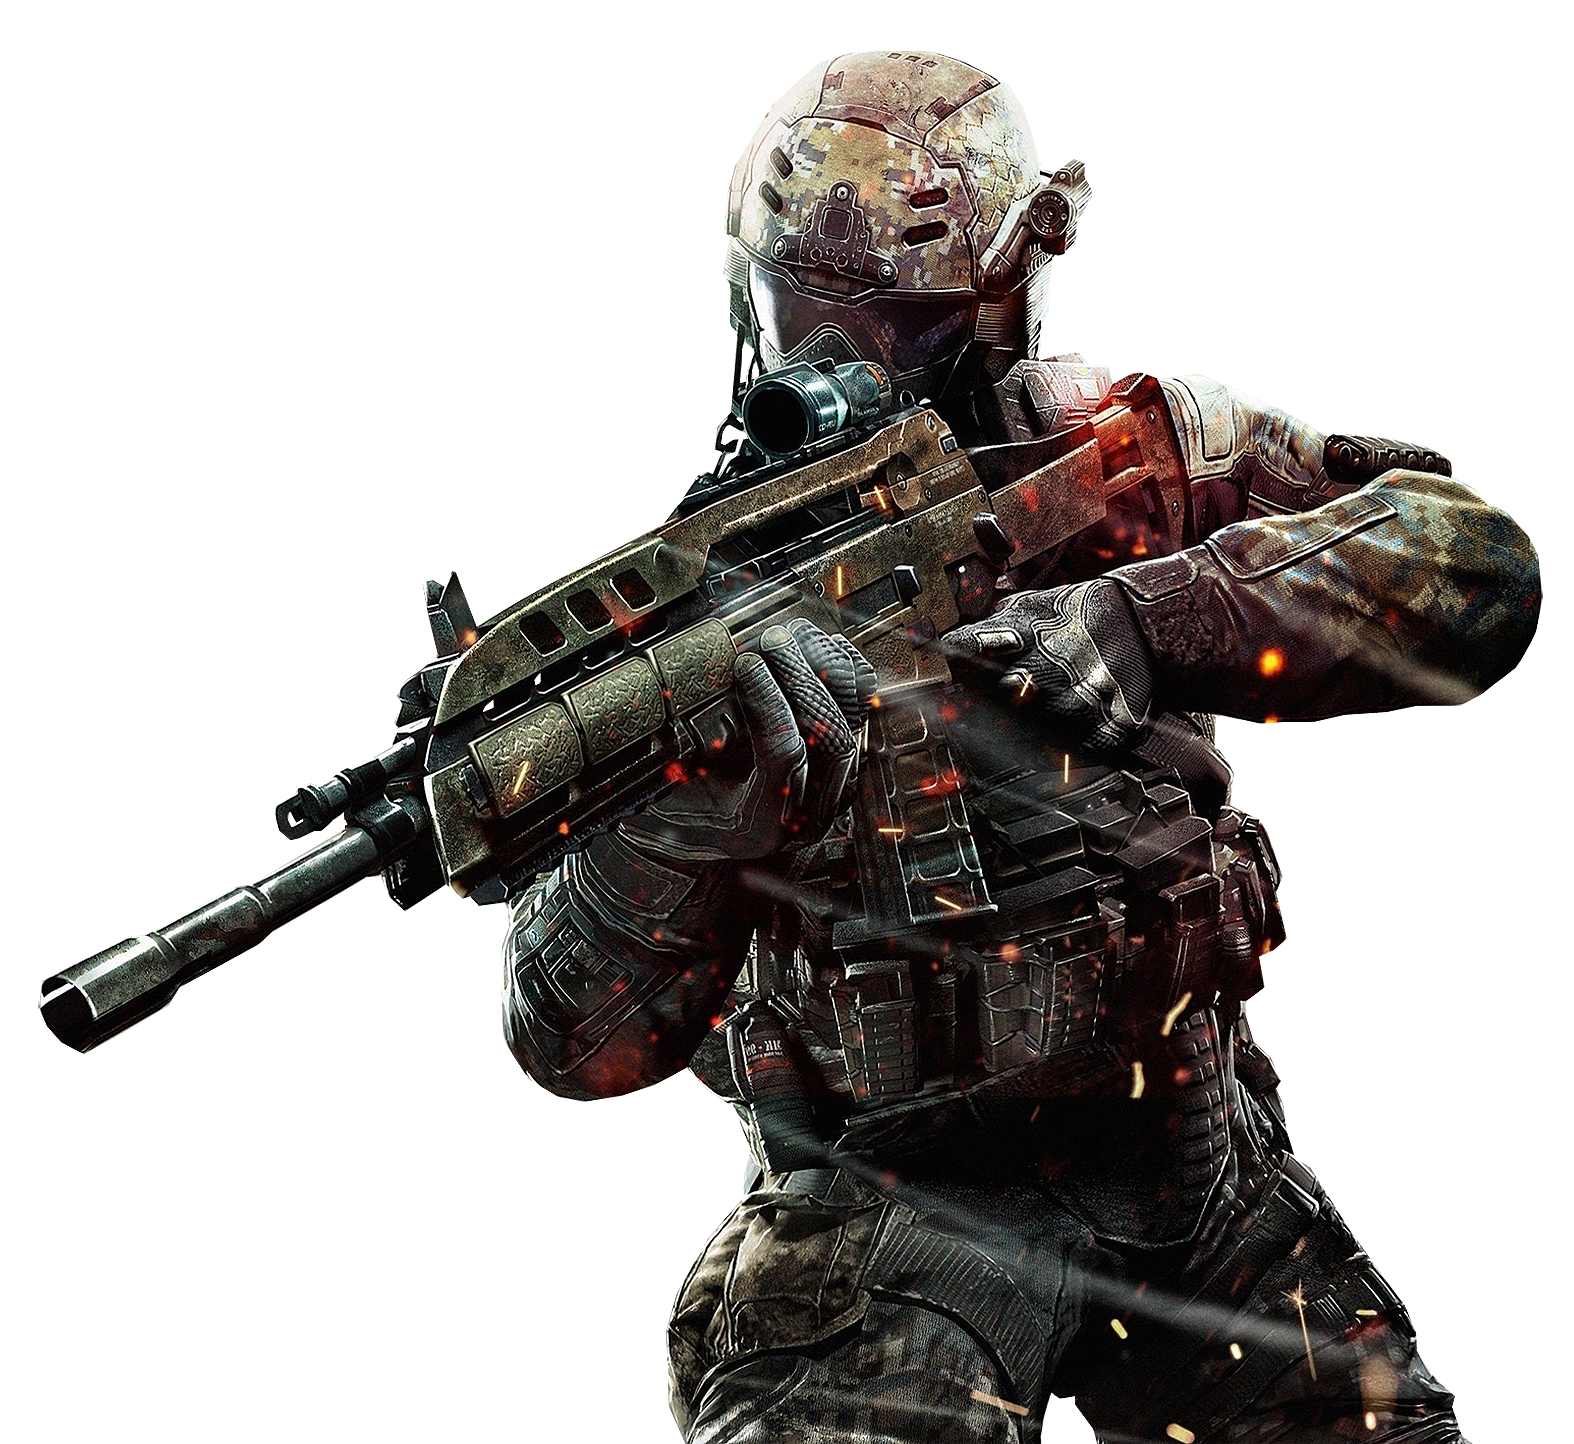 Black ops 2 soldier png. Image purepng free transparent